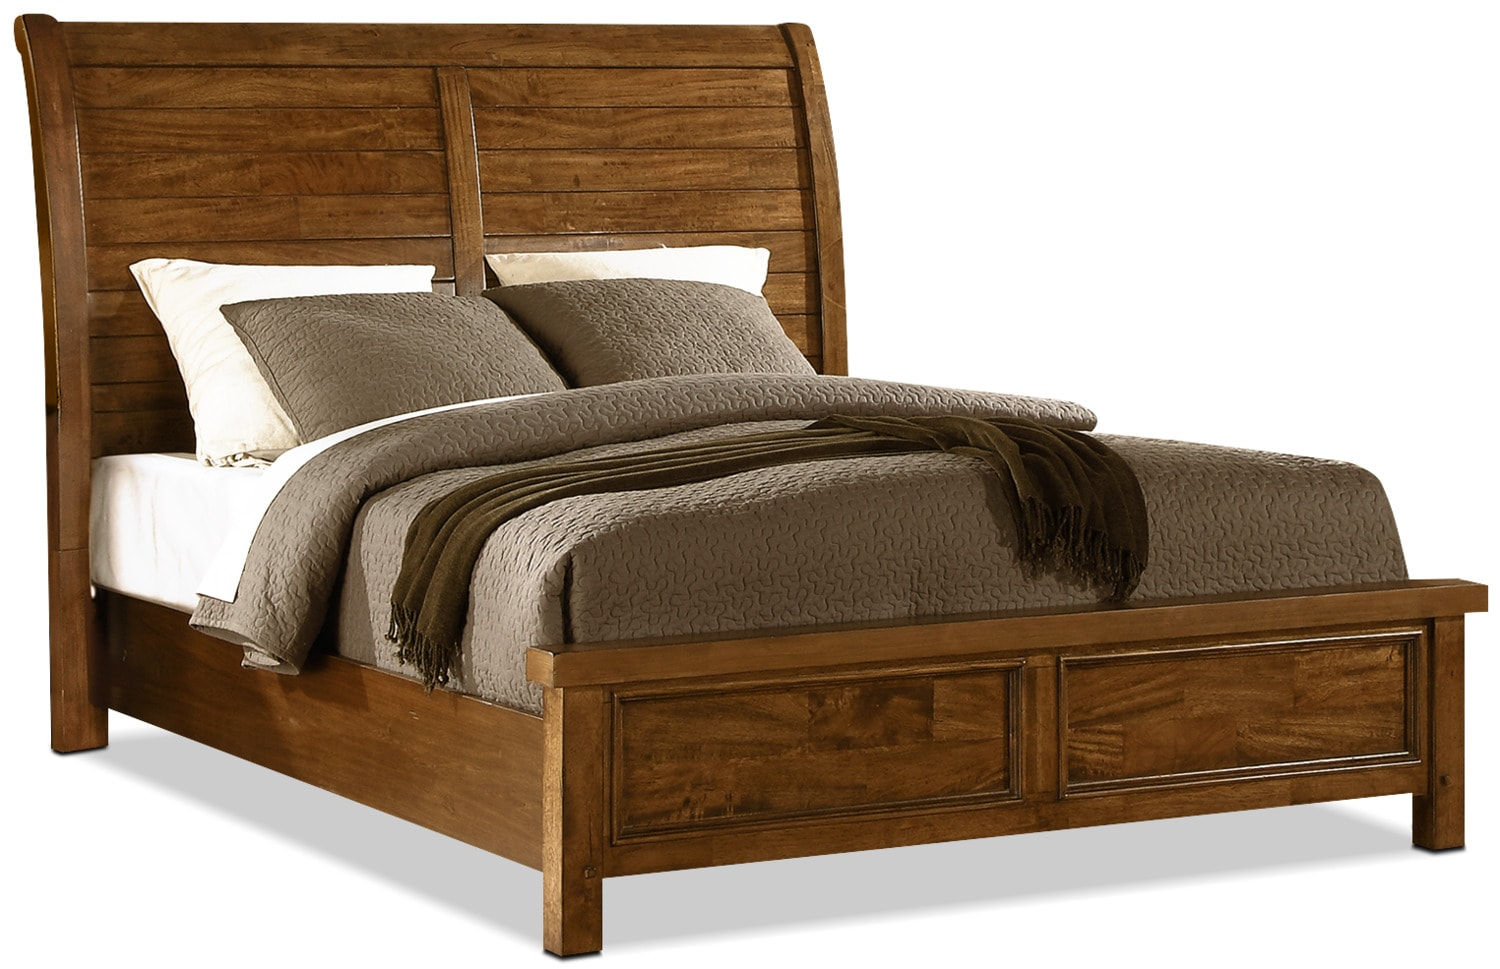 Sonoma King Sleigh Bed – Medium Brown